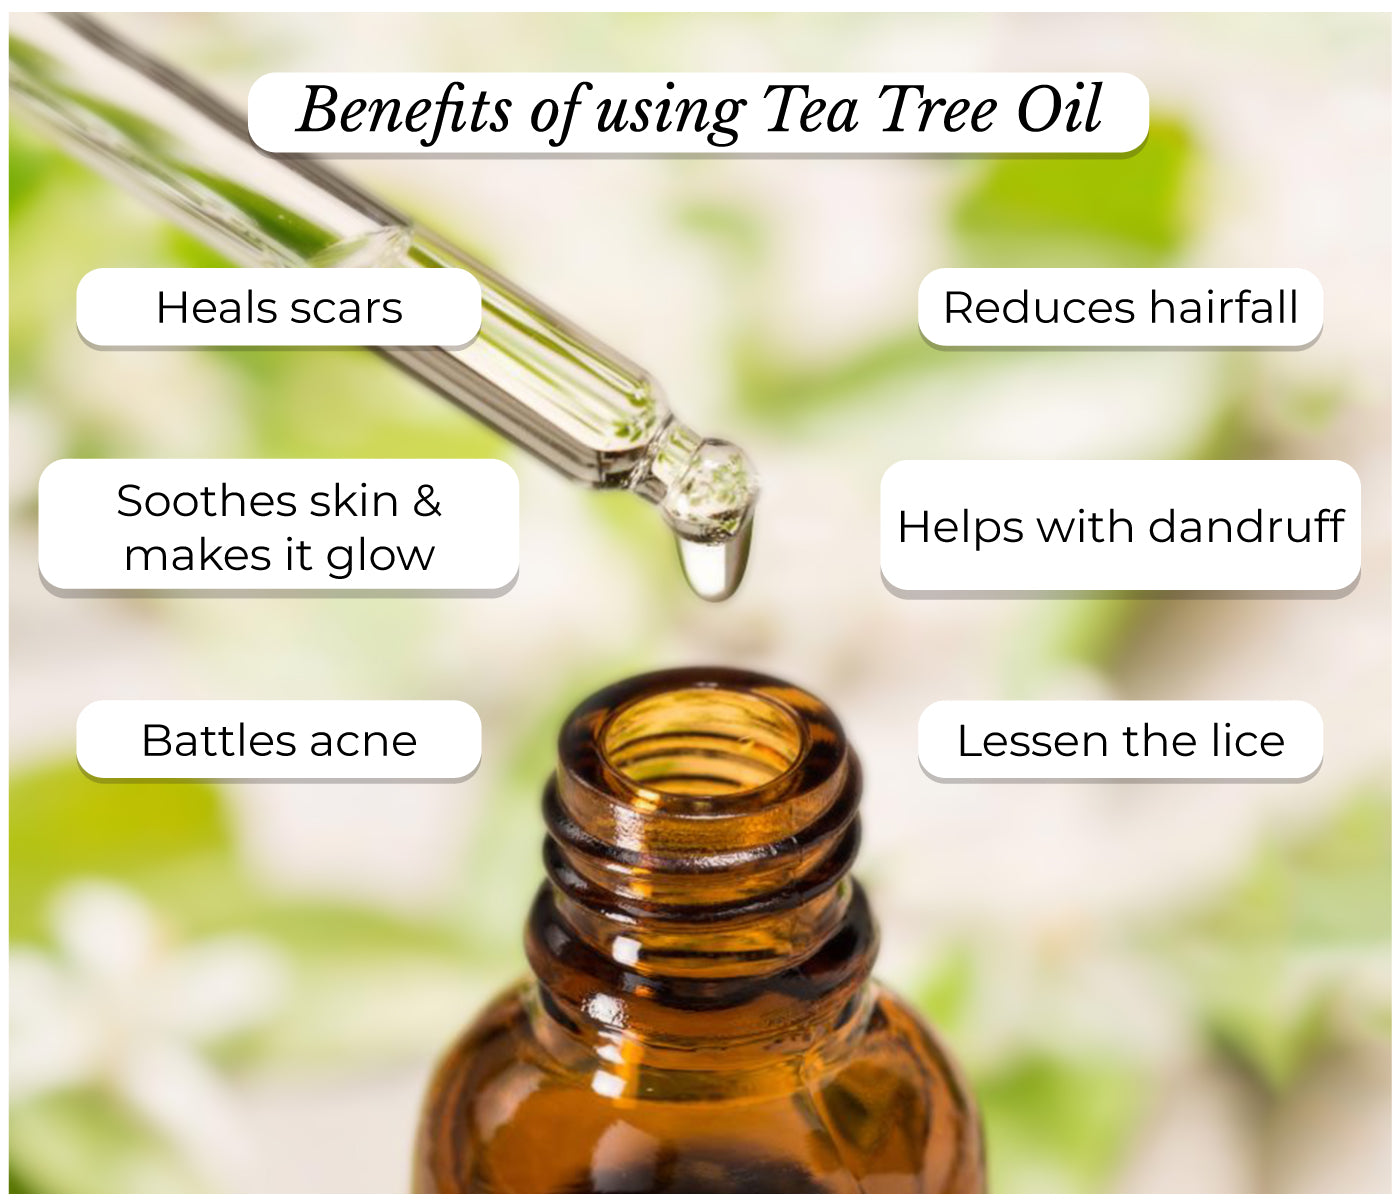 This is an image of the benefits of tea tree oil